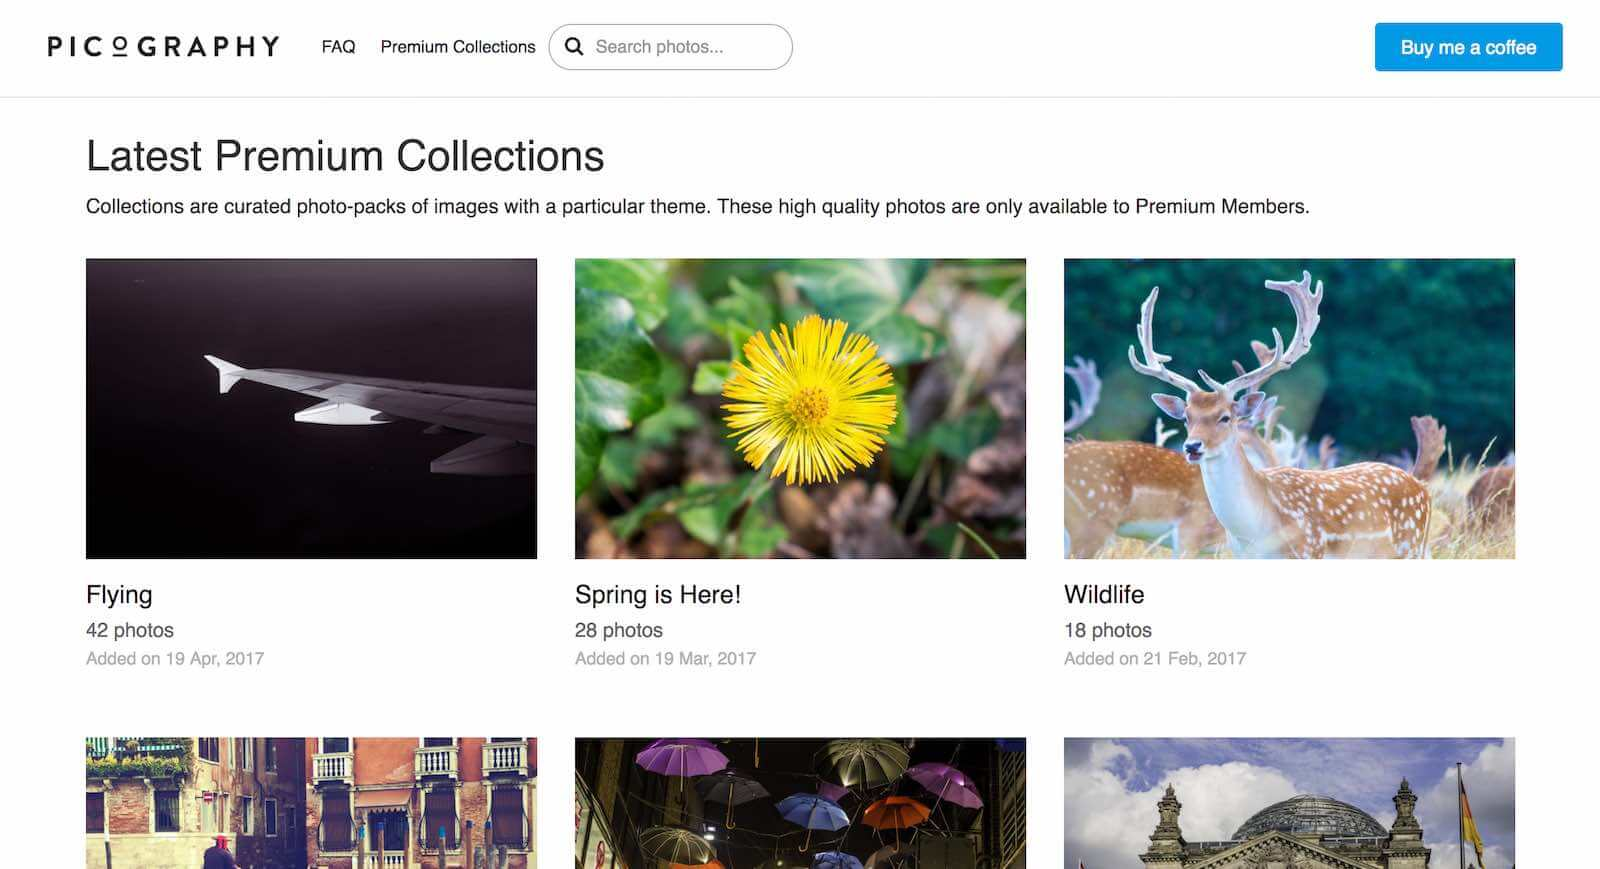 13 Best Stock Photo Sites for Creative Agencies - 8. Picography